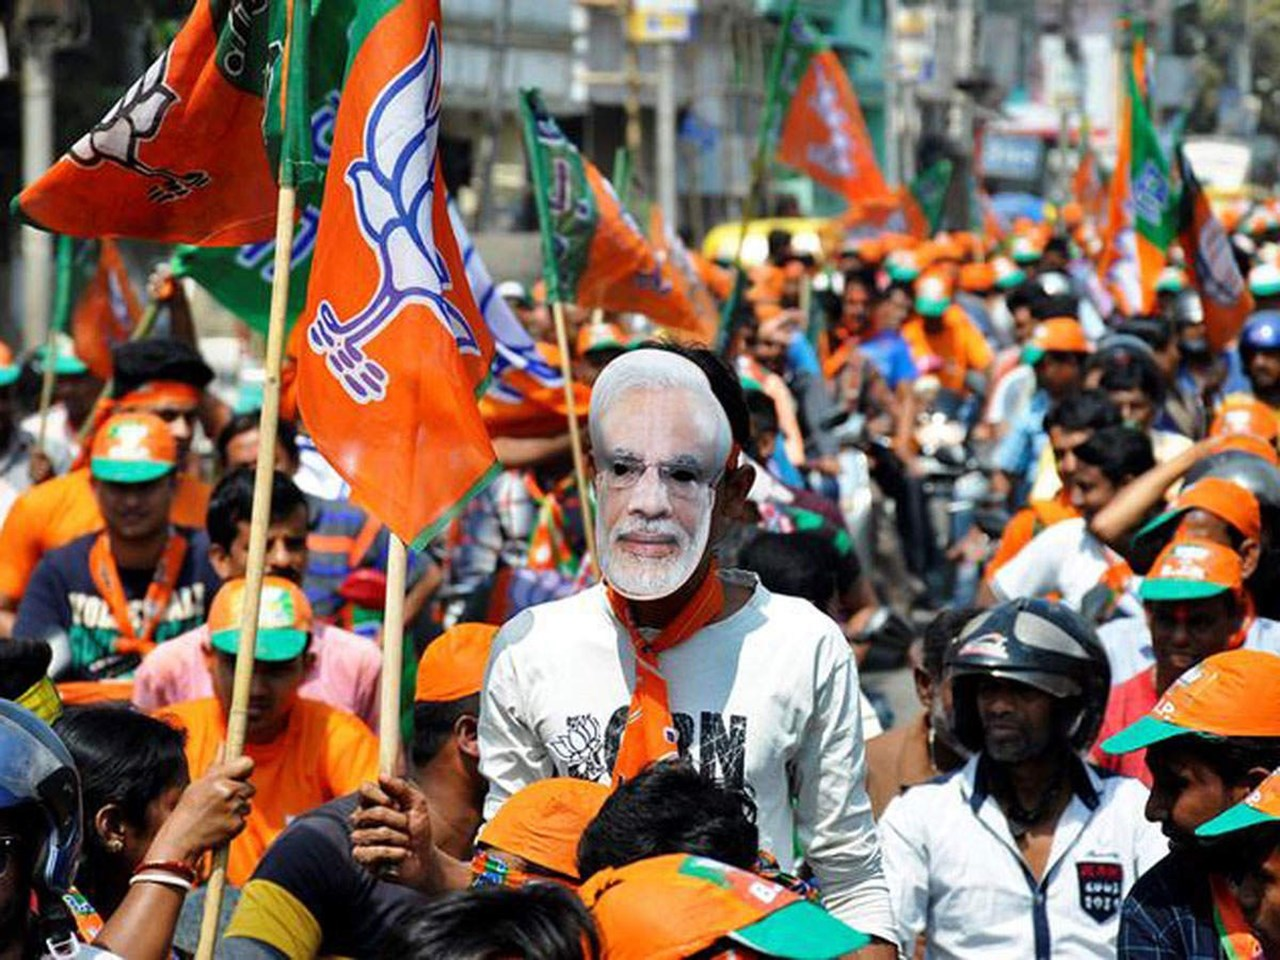 BJP hopeful to kick-start its Rath Yatra campaign from Friday